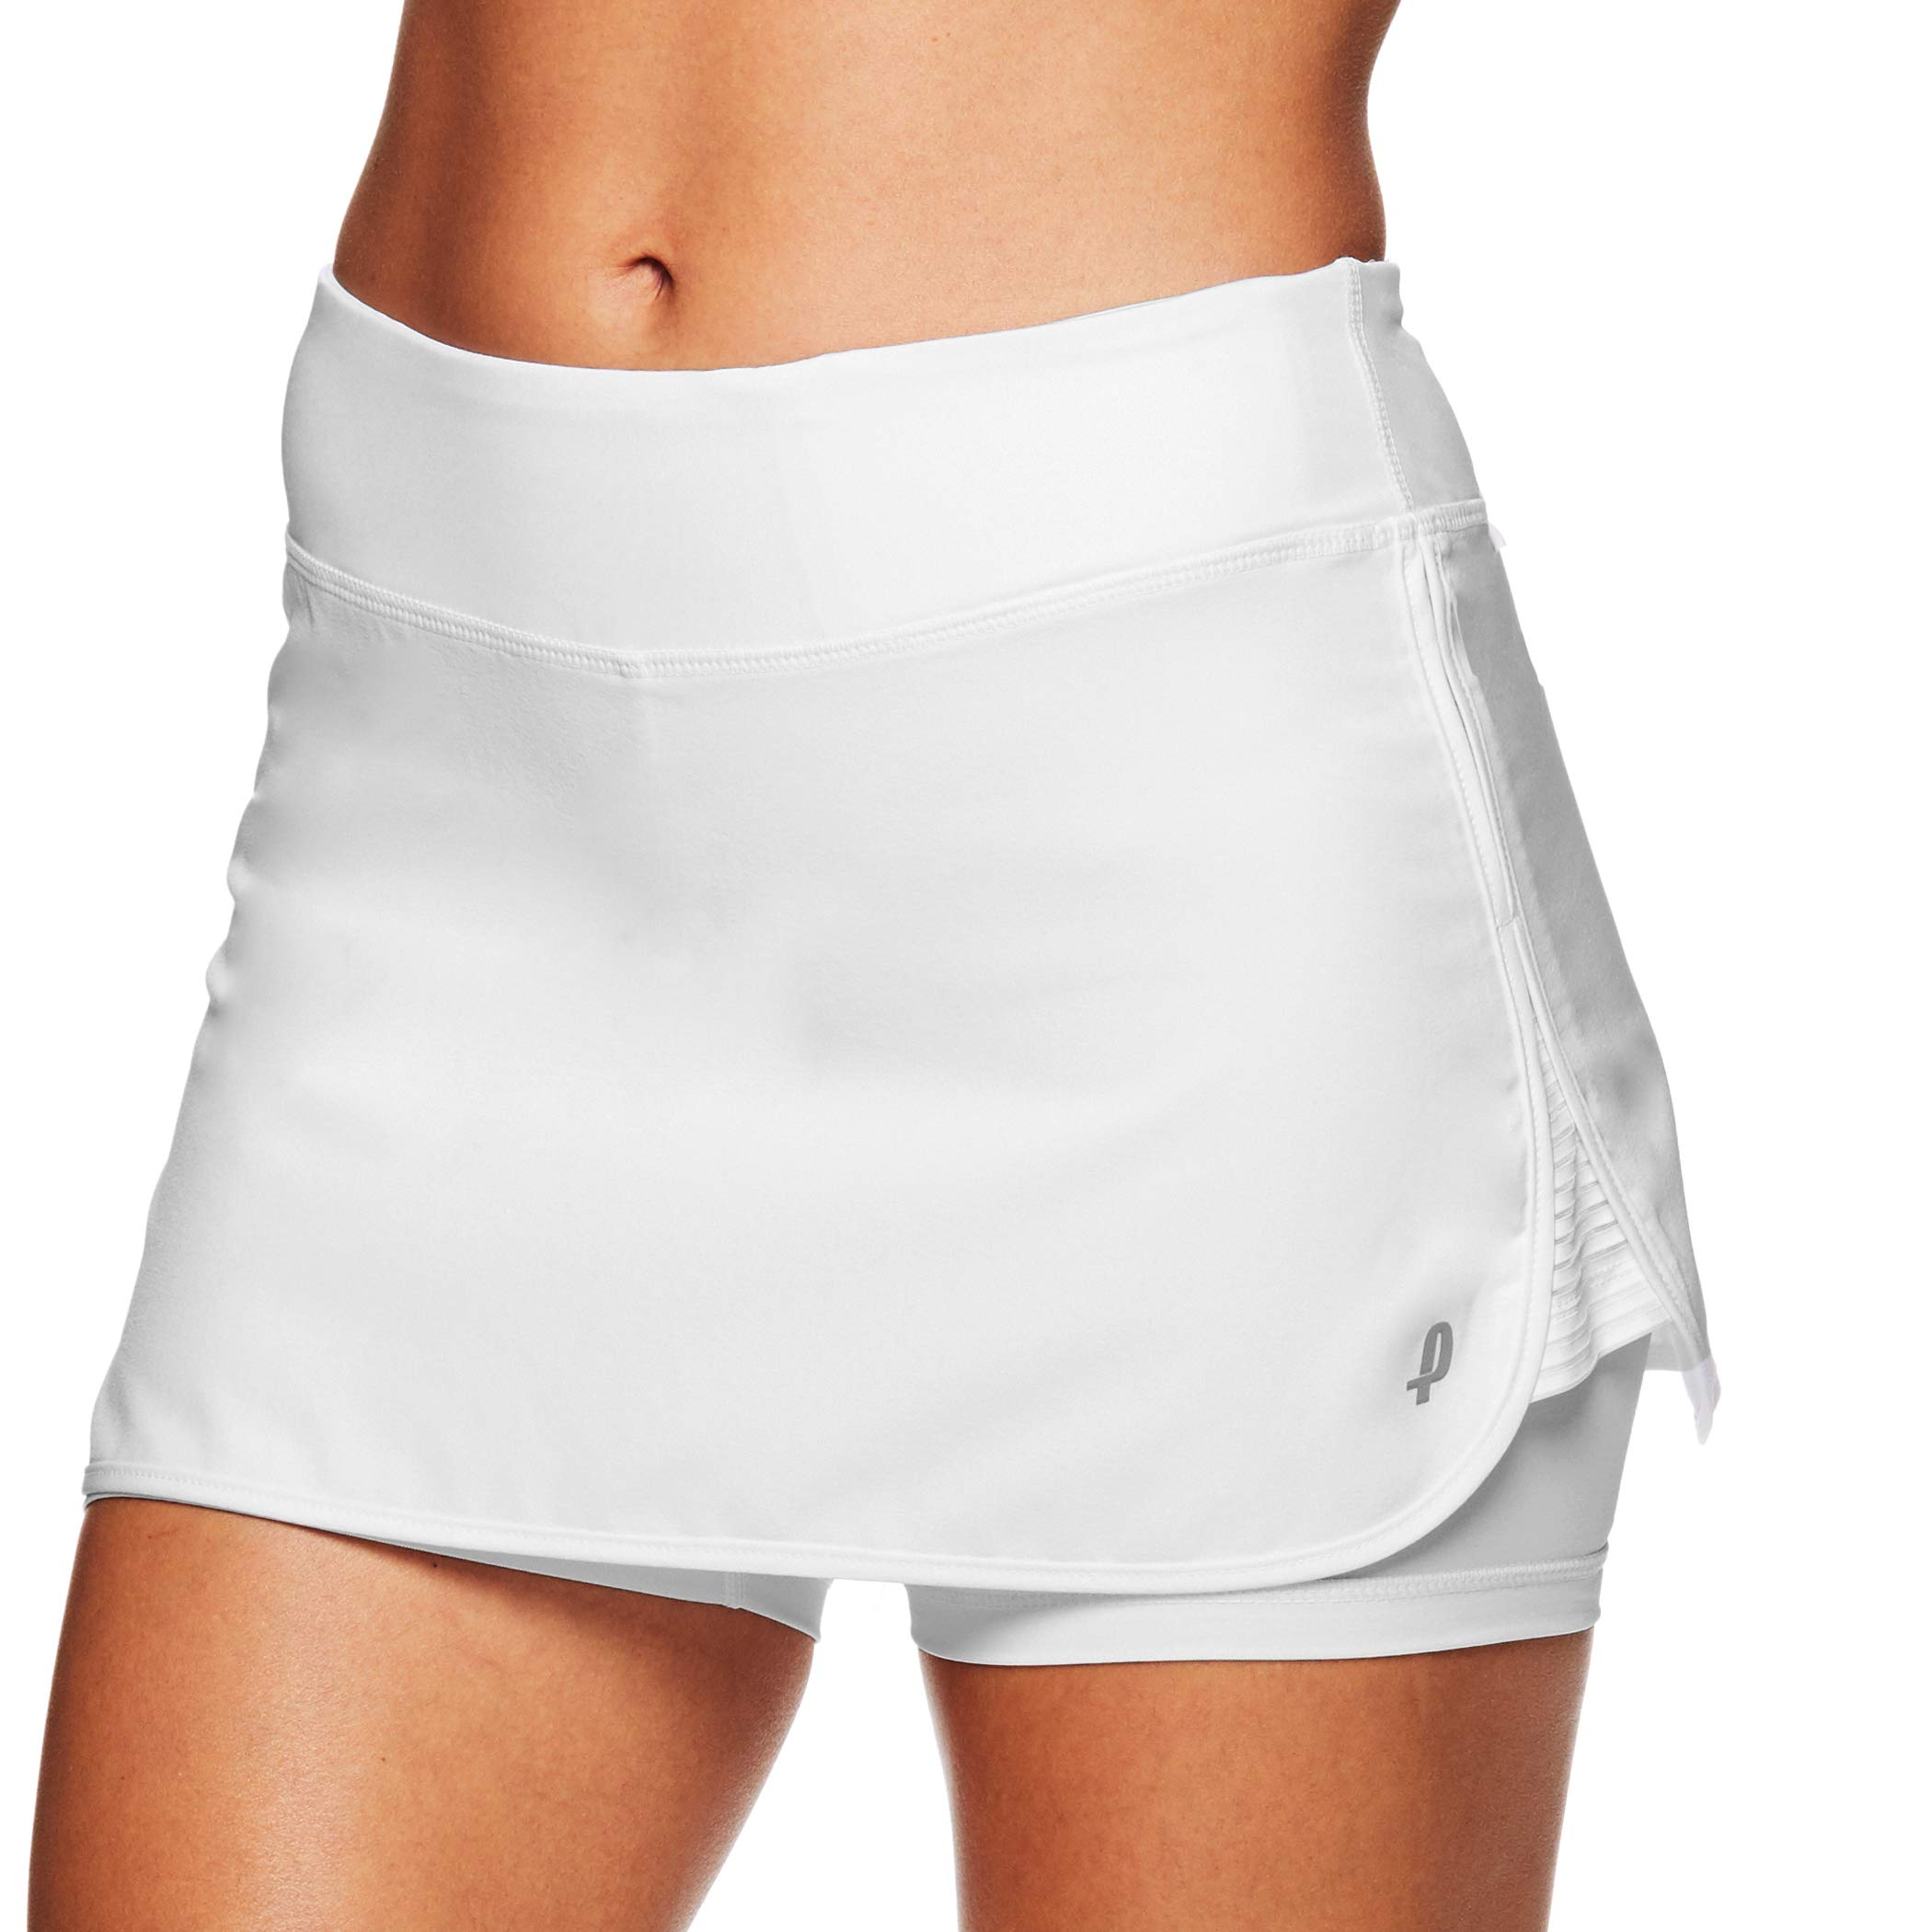 Penn Women's Active Skorts: Wide Band, Low Rise Tennis or Golf Skirt with Shorts,Stark White,X-Small